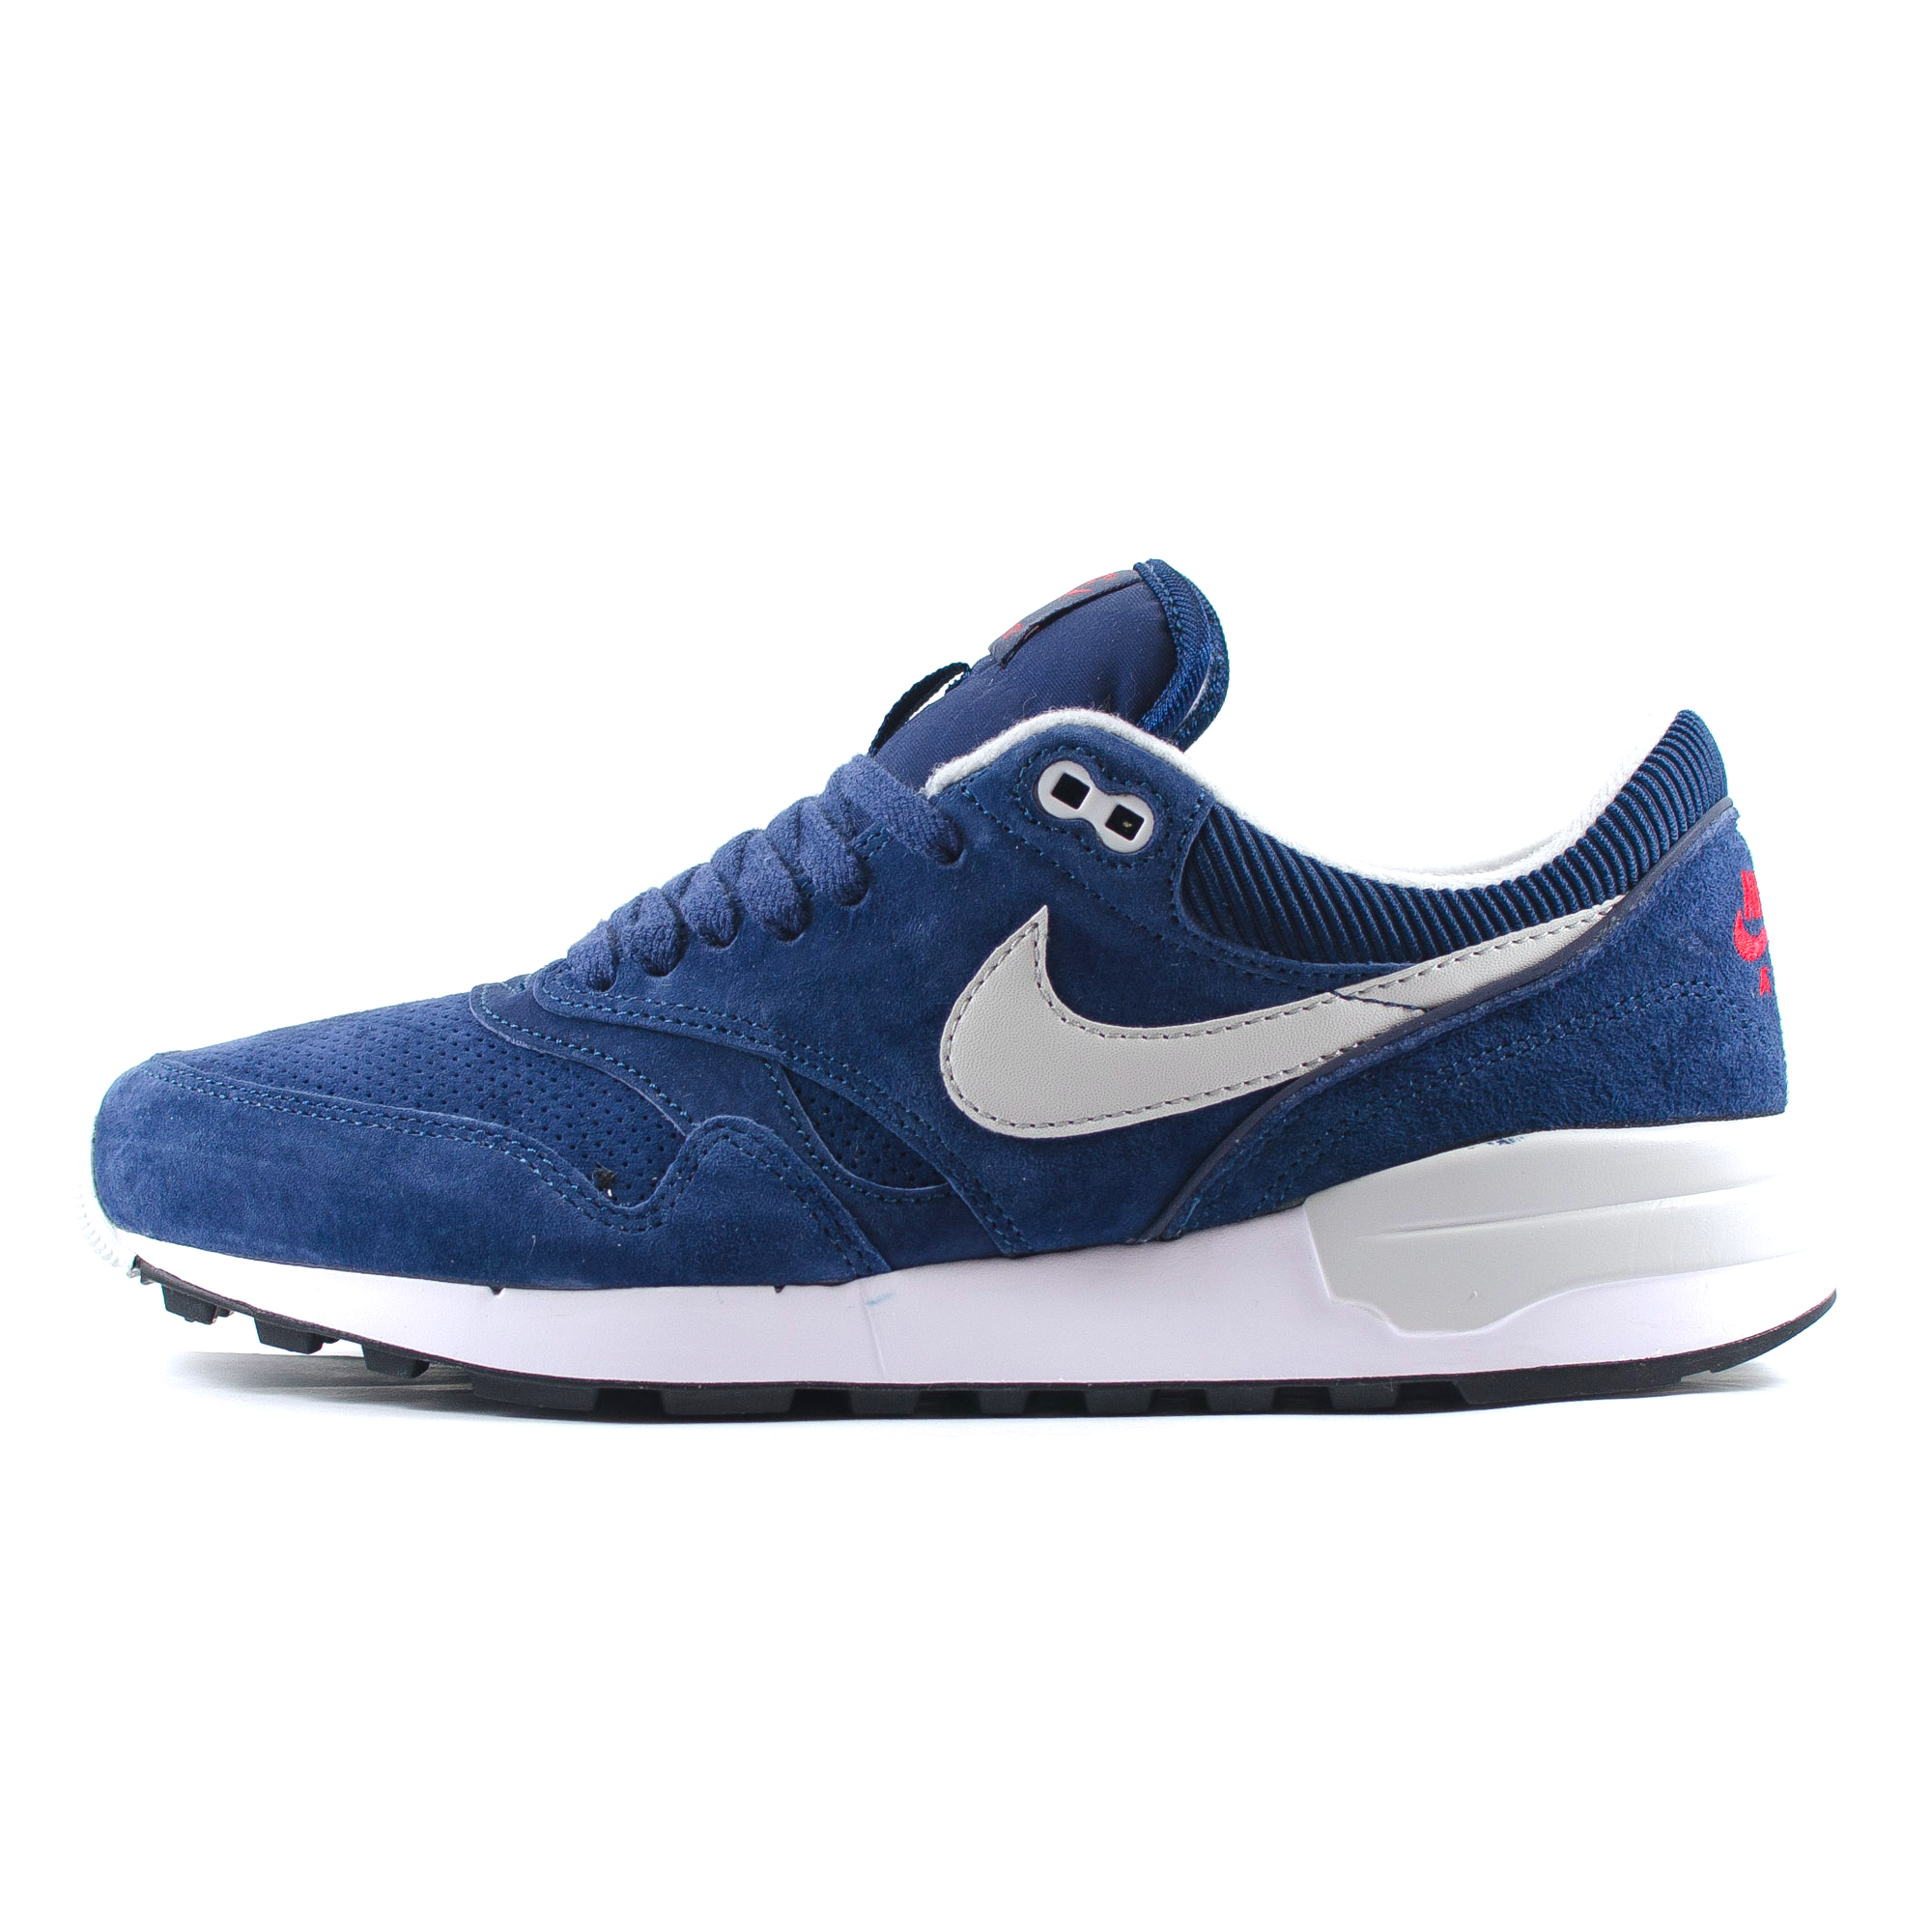 mens nike air odyssey leather suede midnight blue red grey. Black Bedroom Furniture Sets. Home Design Ideas